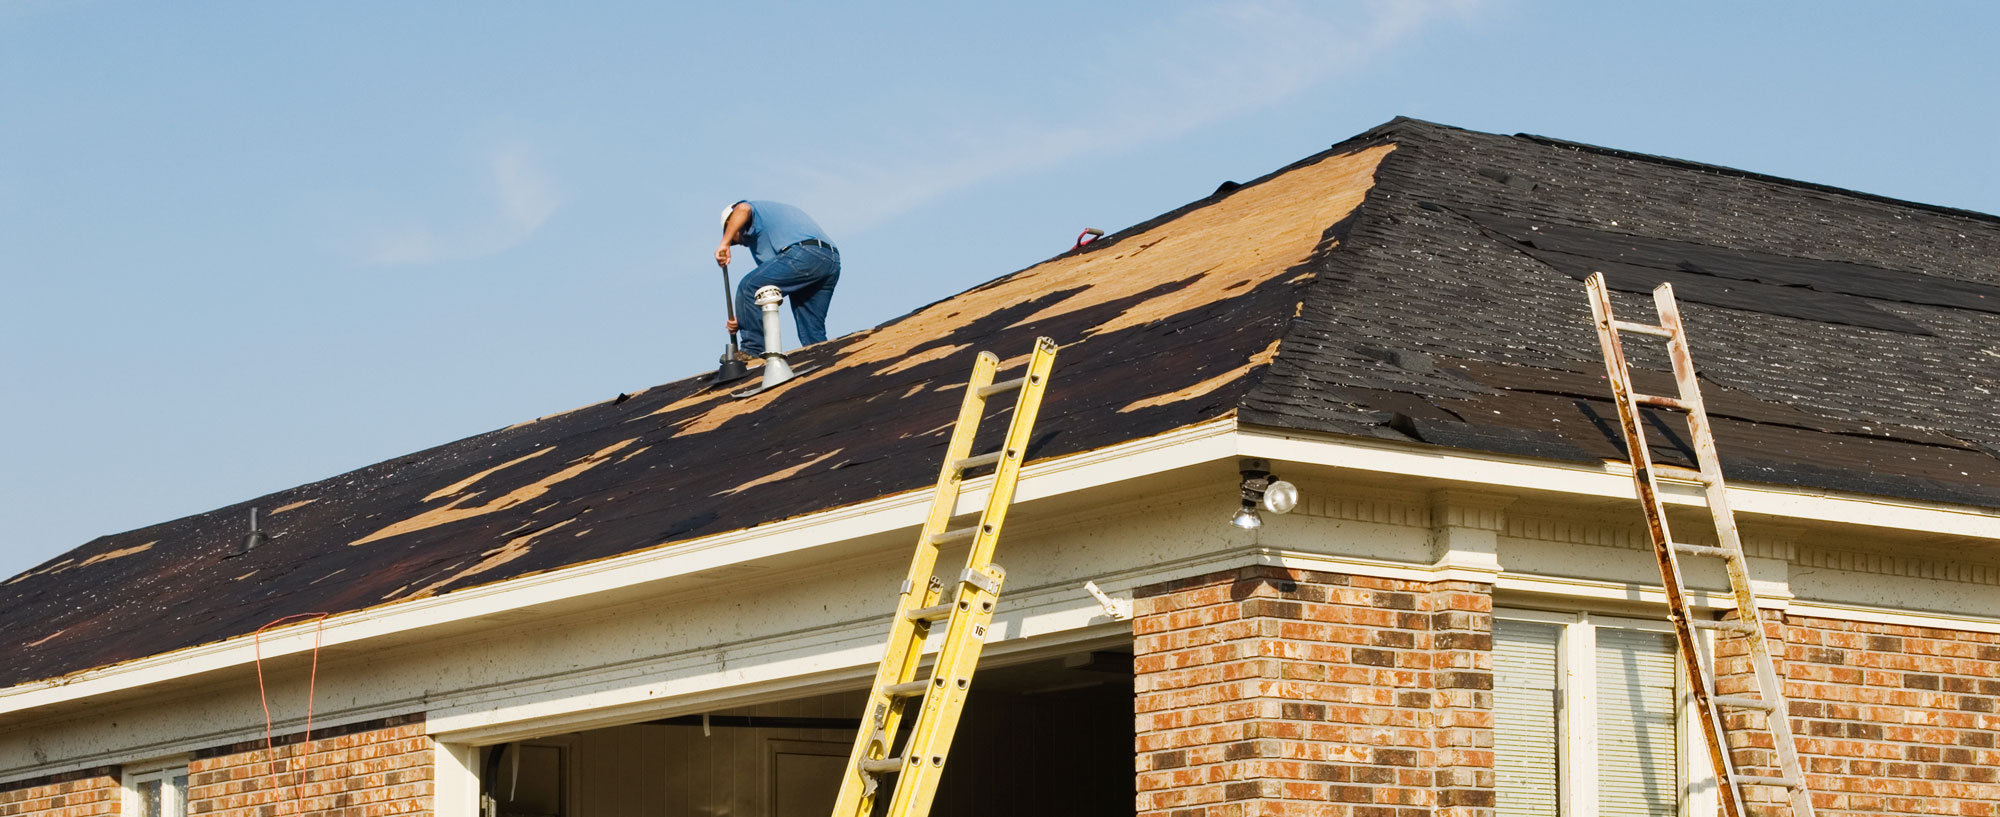 The Roof Replacement Process